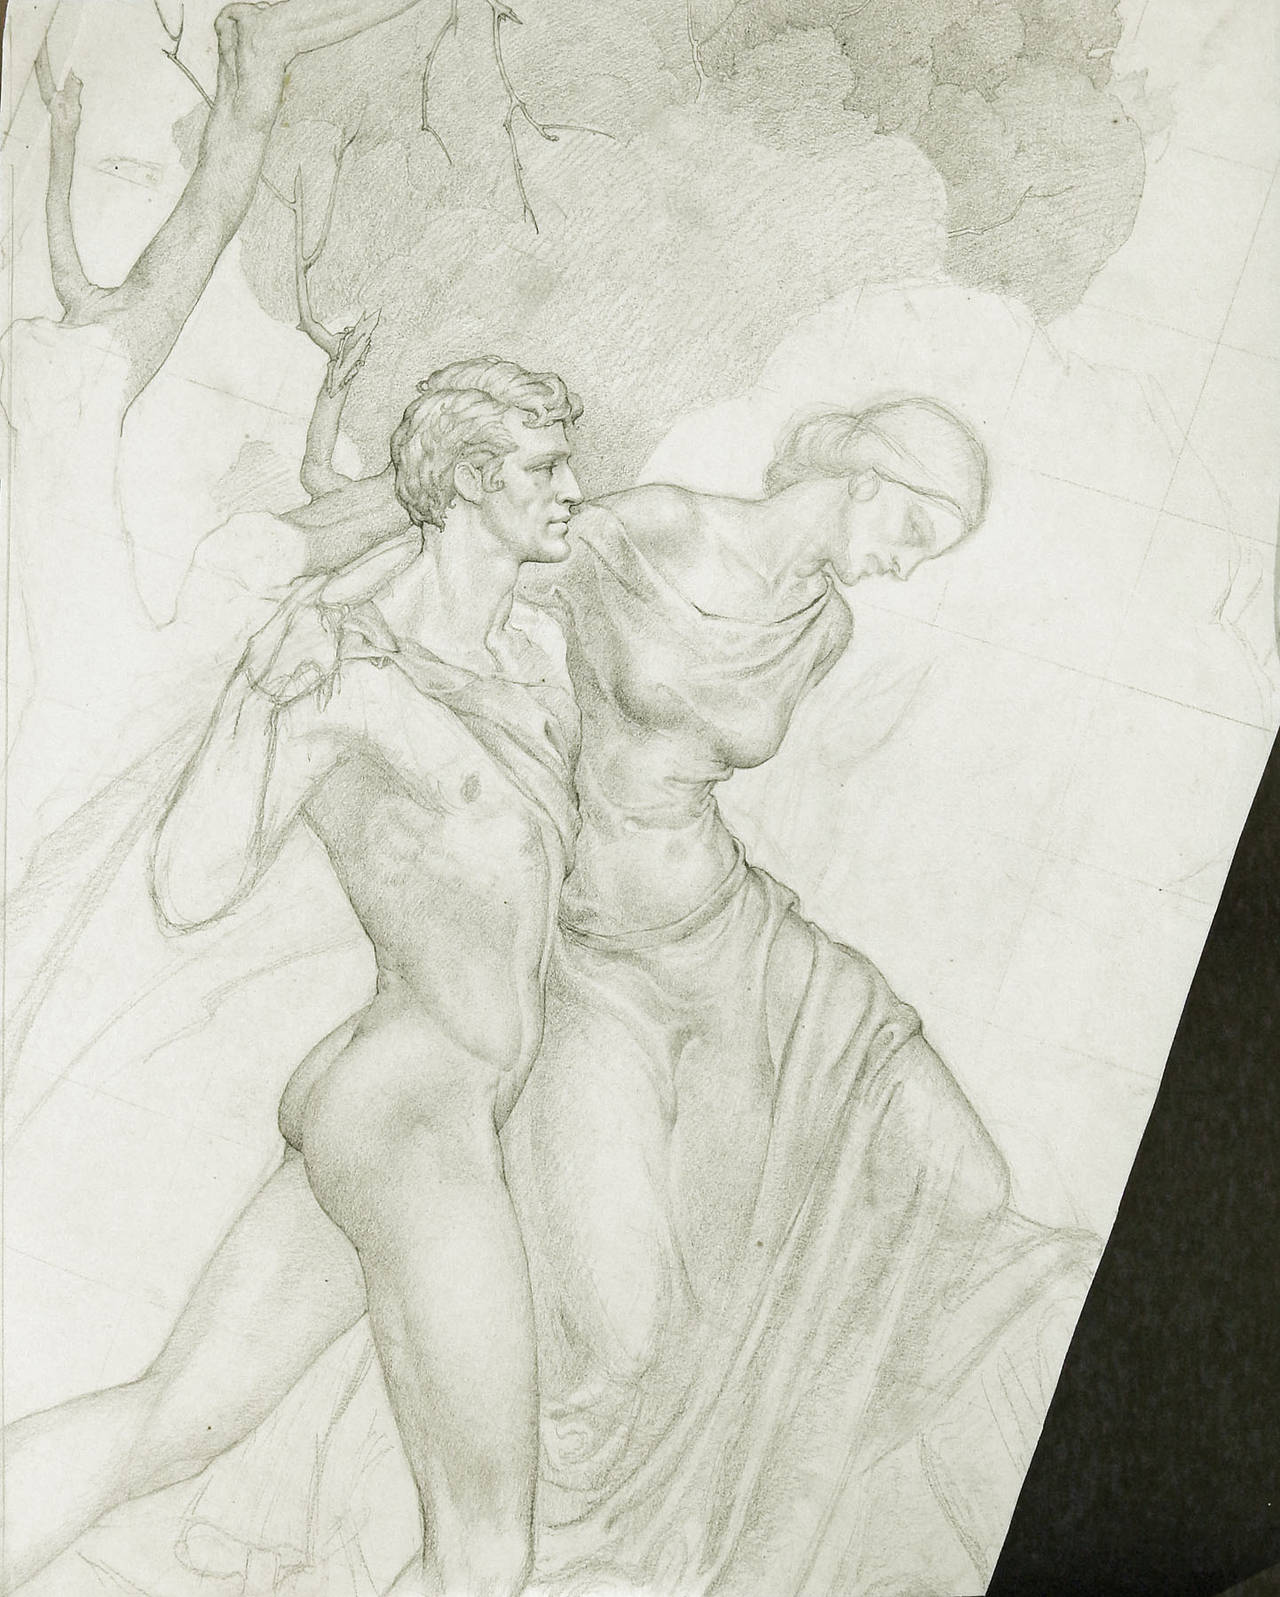 Always a master draftsman, this lovely drawing by Dunbar Beck demonstrates his mastery of the human figure, with antecedents in Renaissance and Pre-Raphaelite paintings. The drapery of the female figure, in particular, is strongly reminiscent of